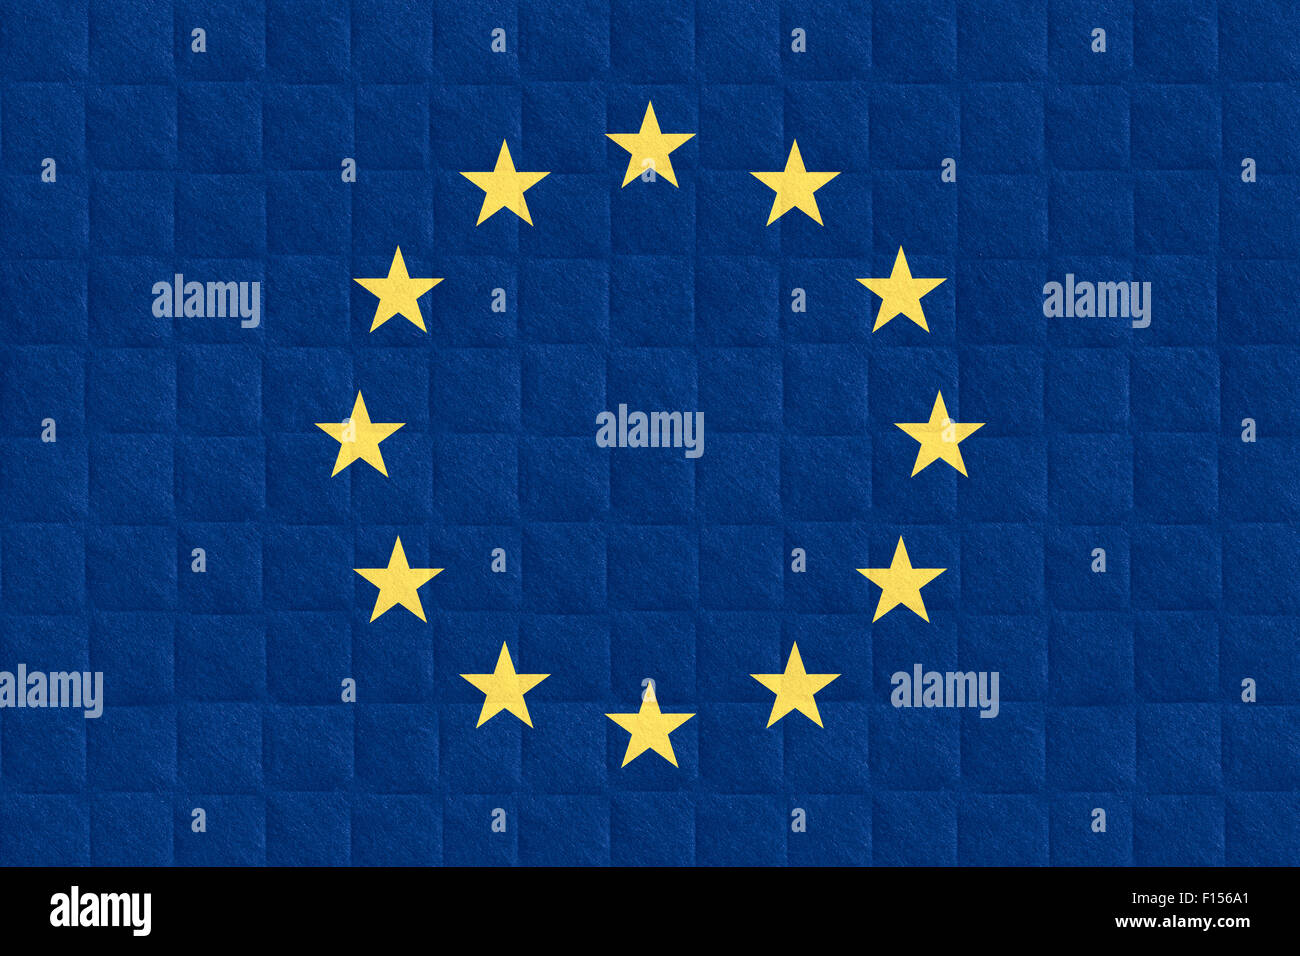 flag of European Union or banner on check pattern background - Stock Image